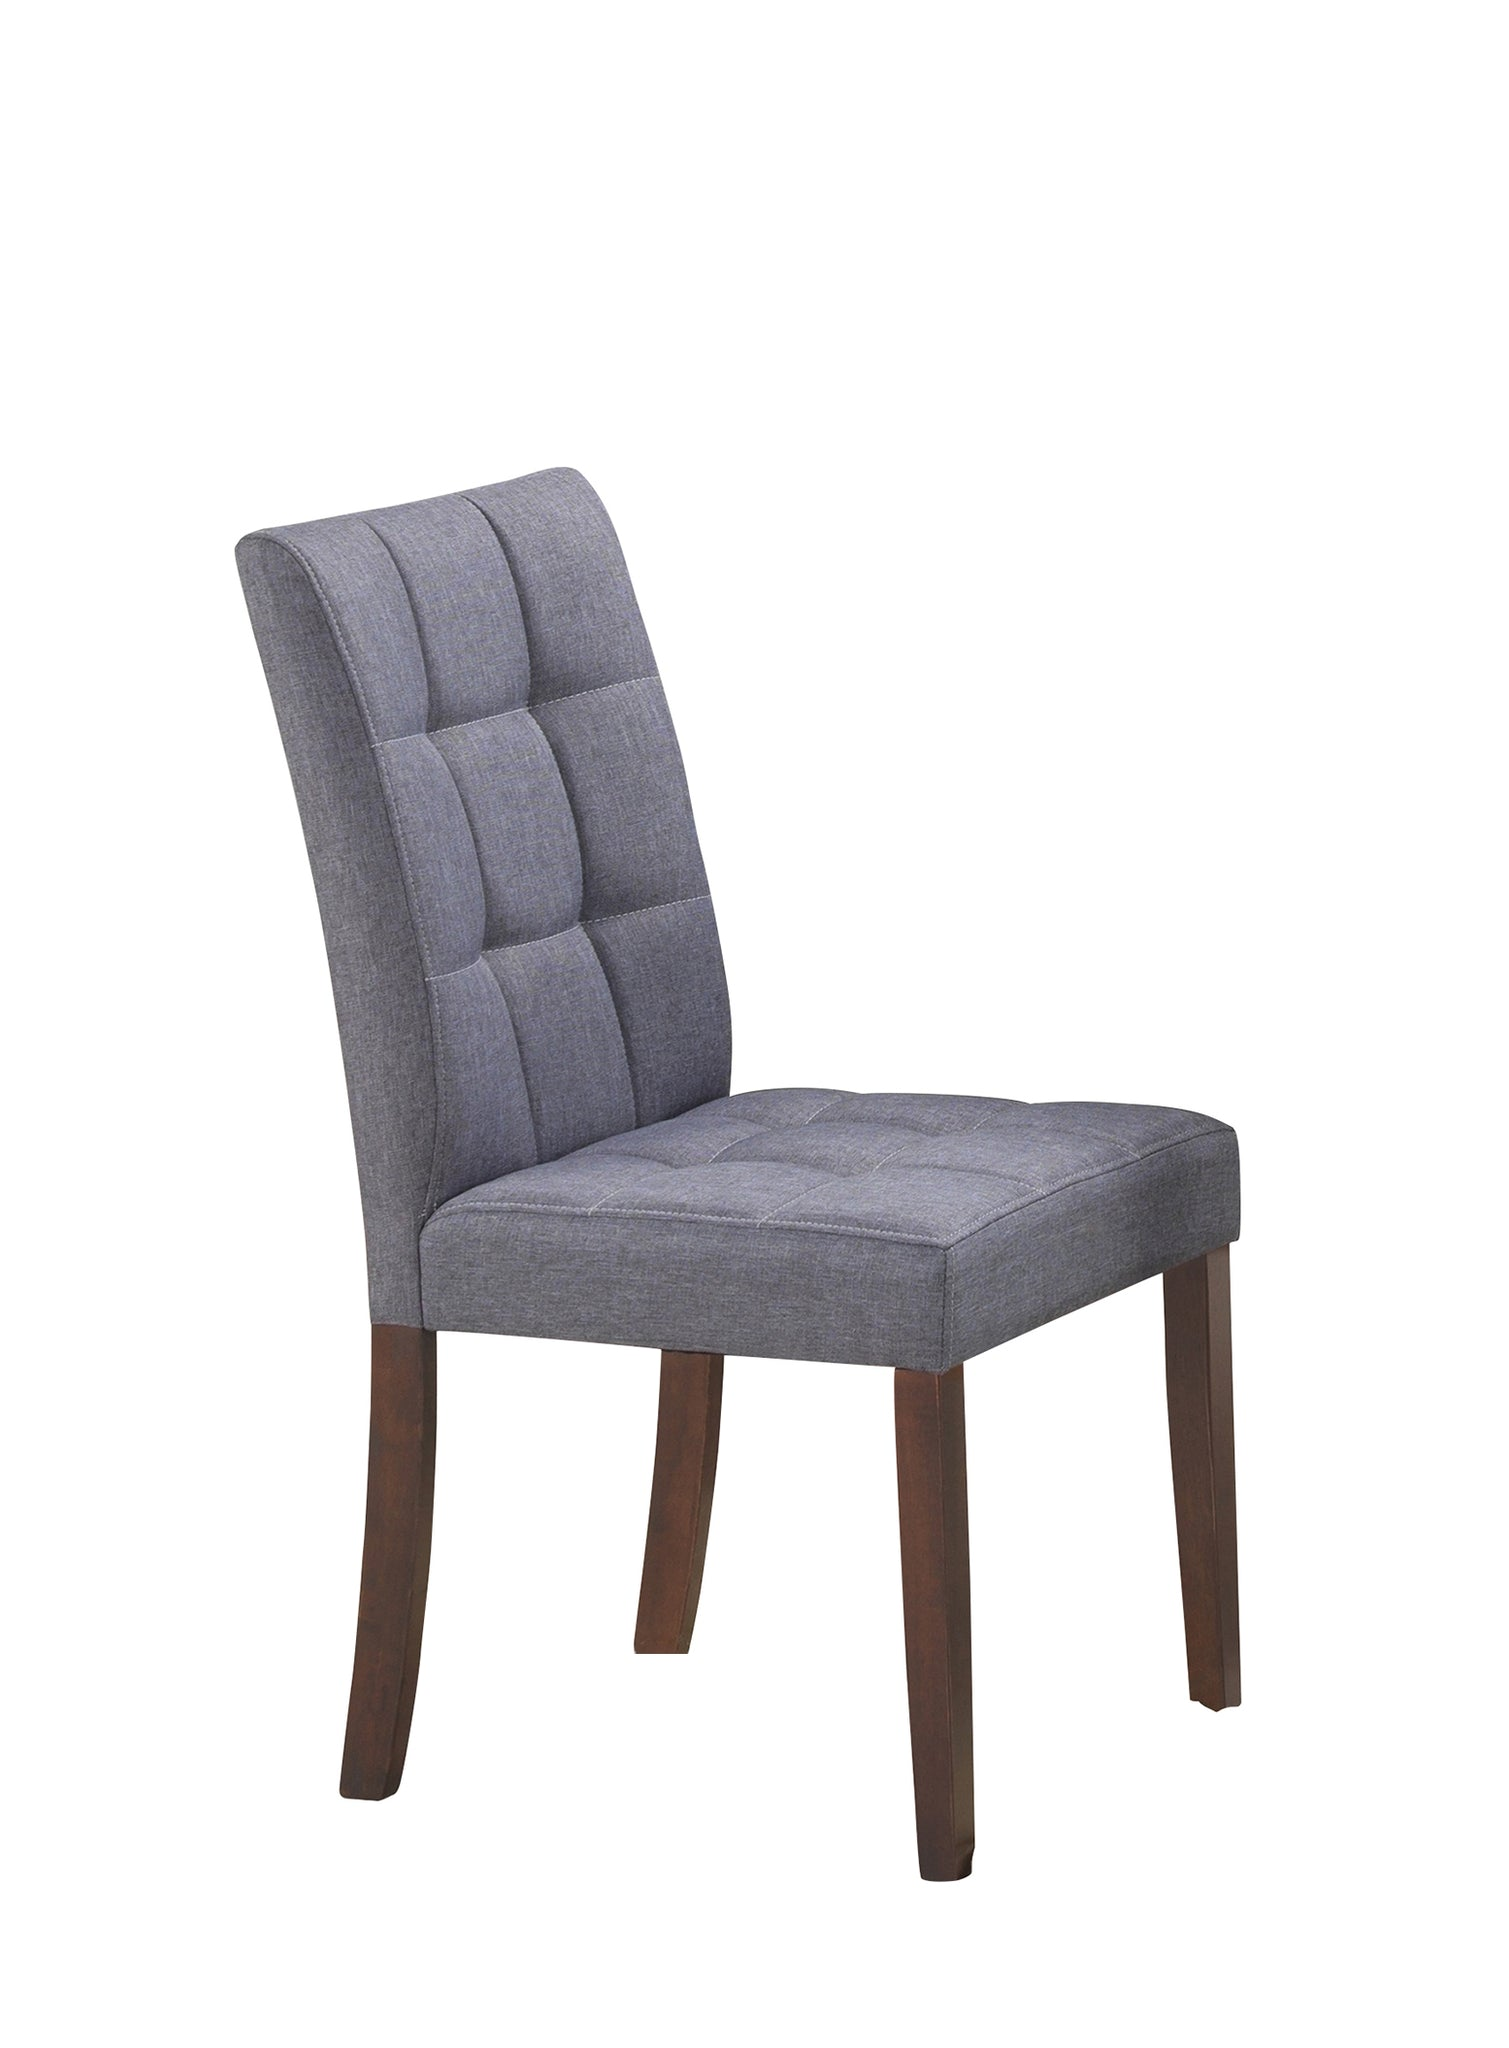 Clare Dining Chair Dark Grey